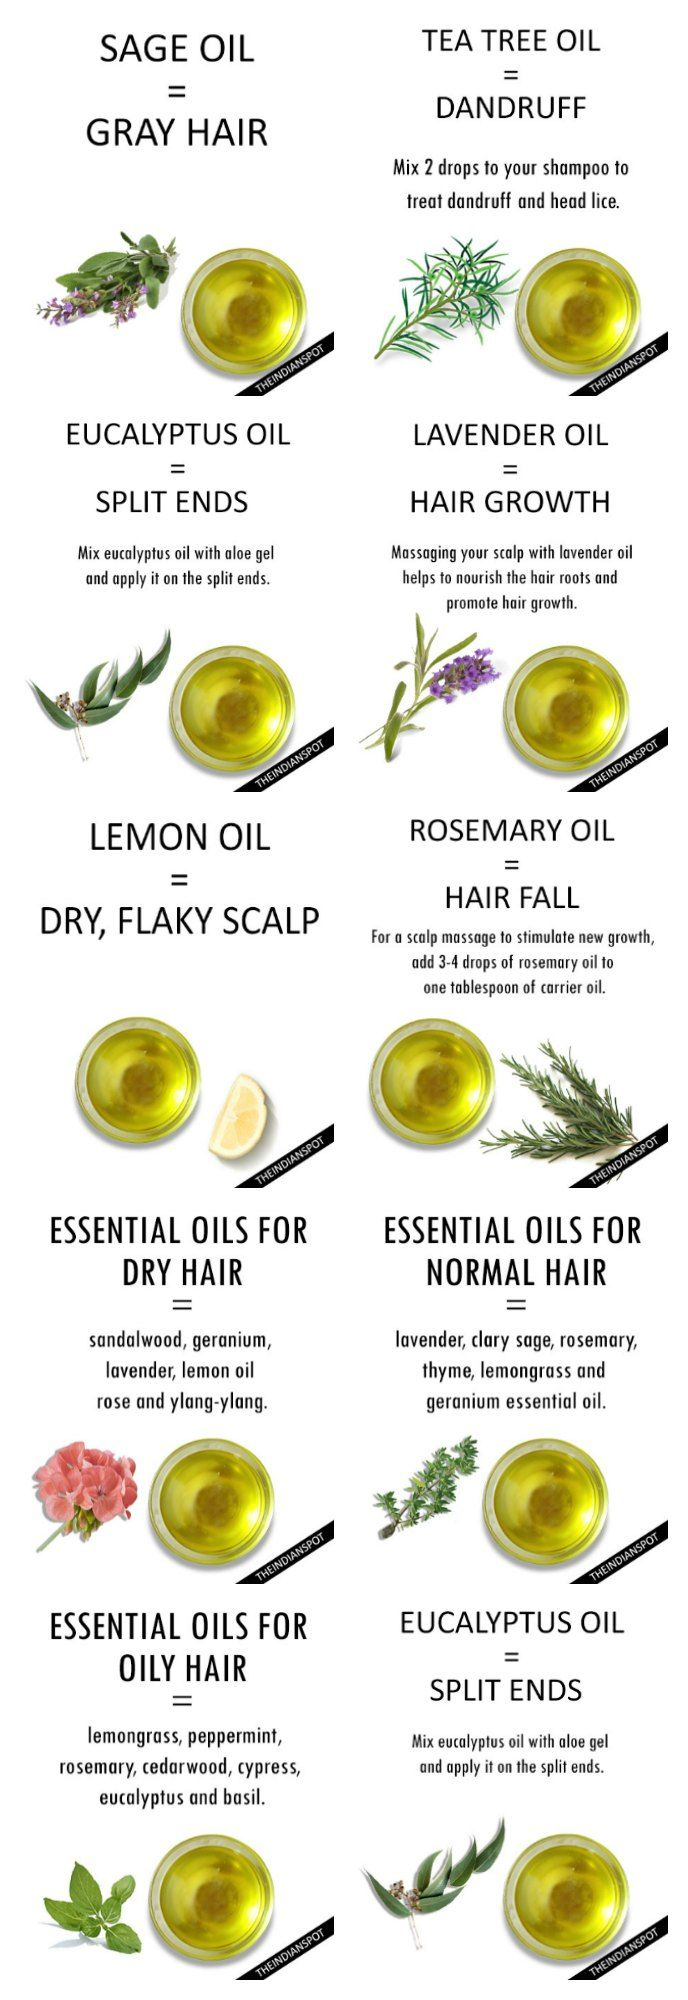 Essential oils for hair - Tap the Link Now to Shop Hair and Beauty Products Online at Great Savings and Free Shipping!! https://getit-4me.com/